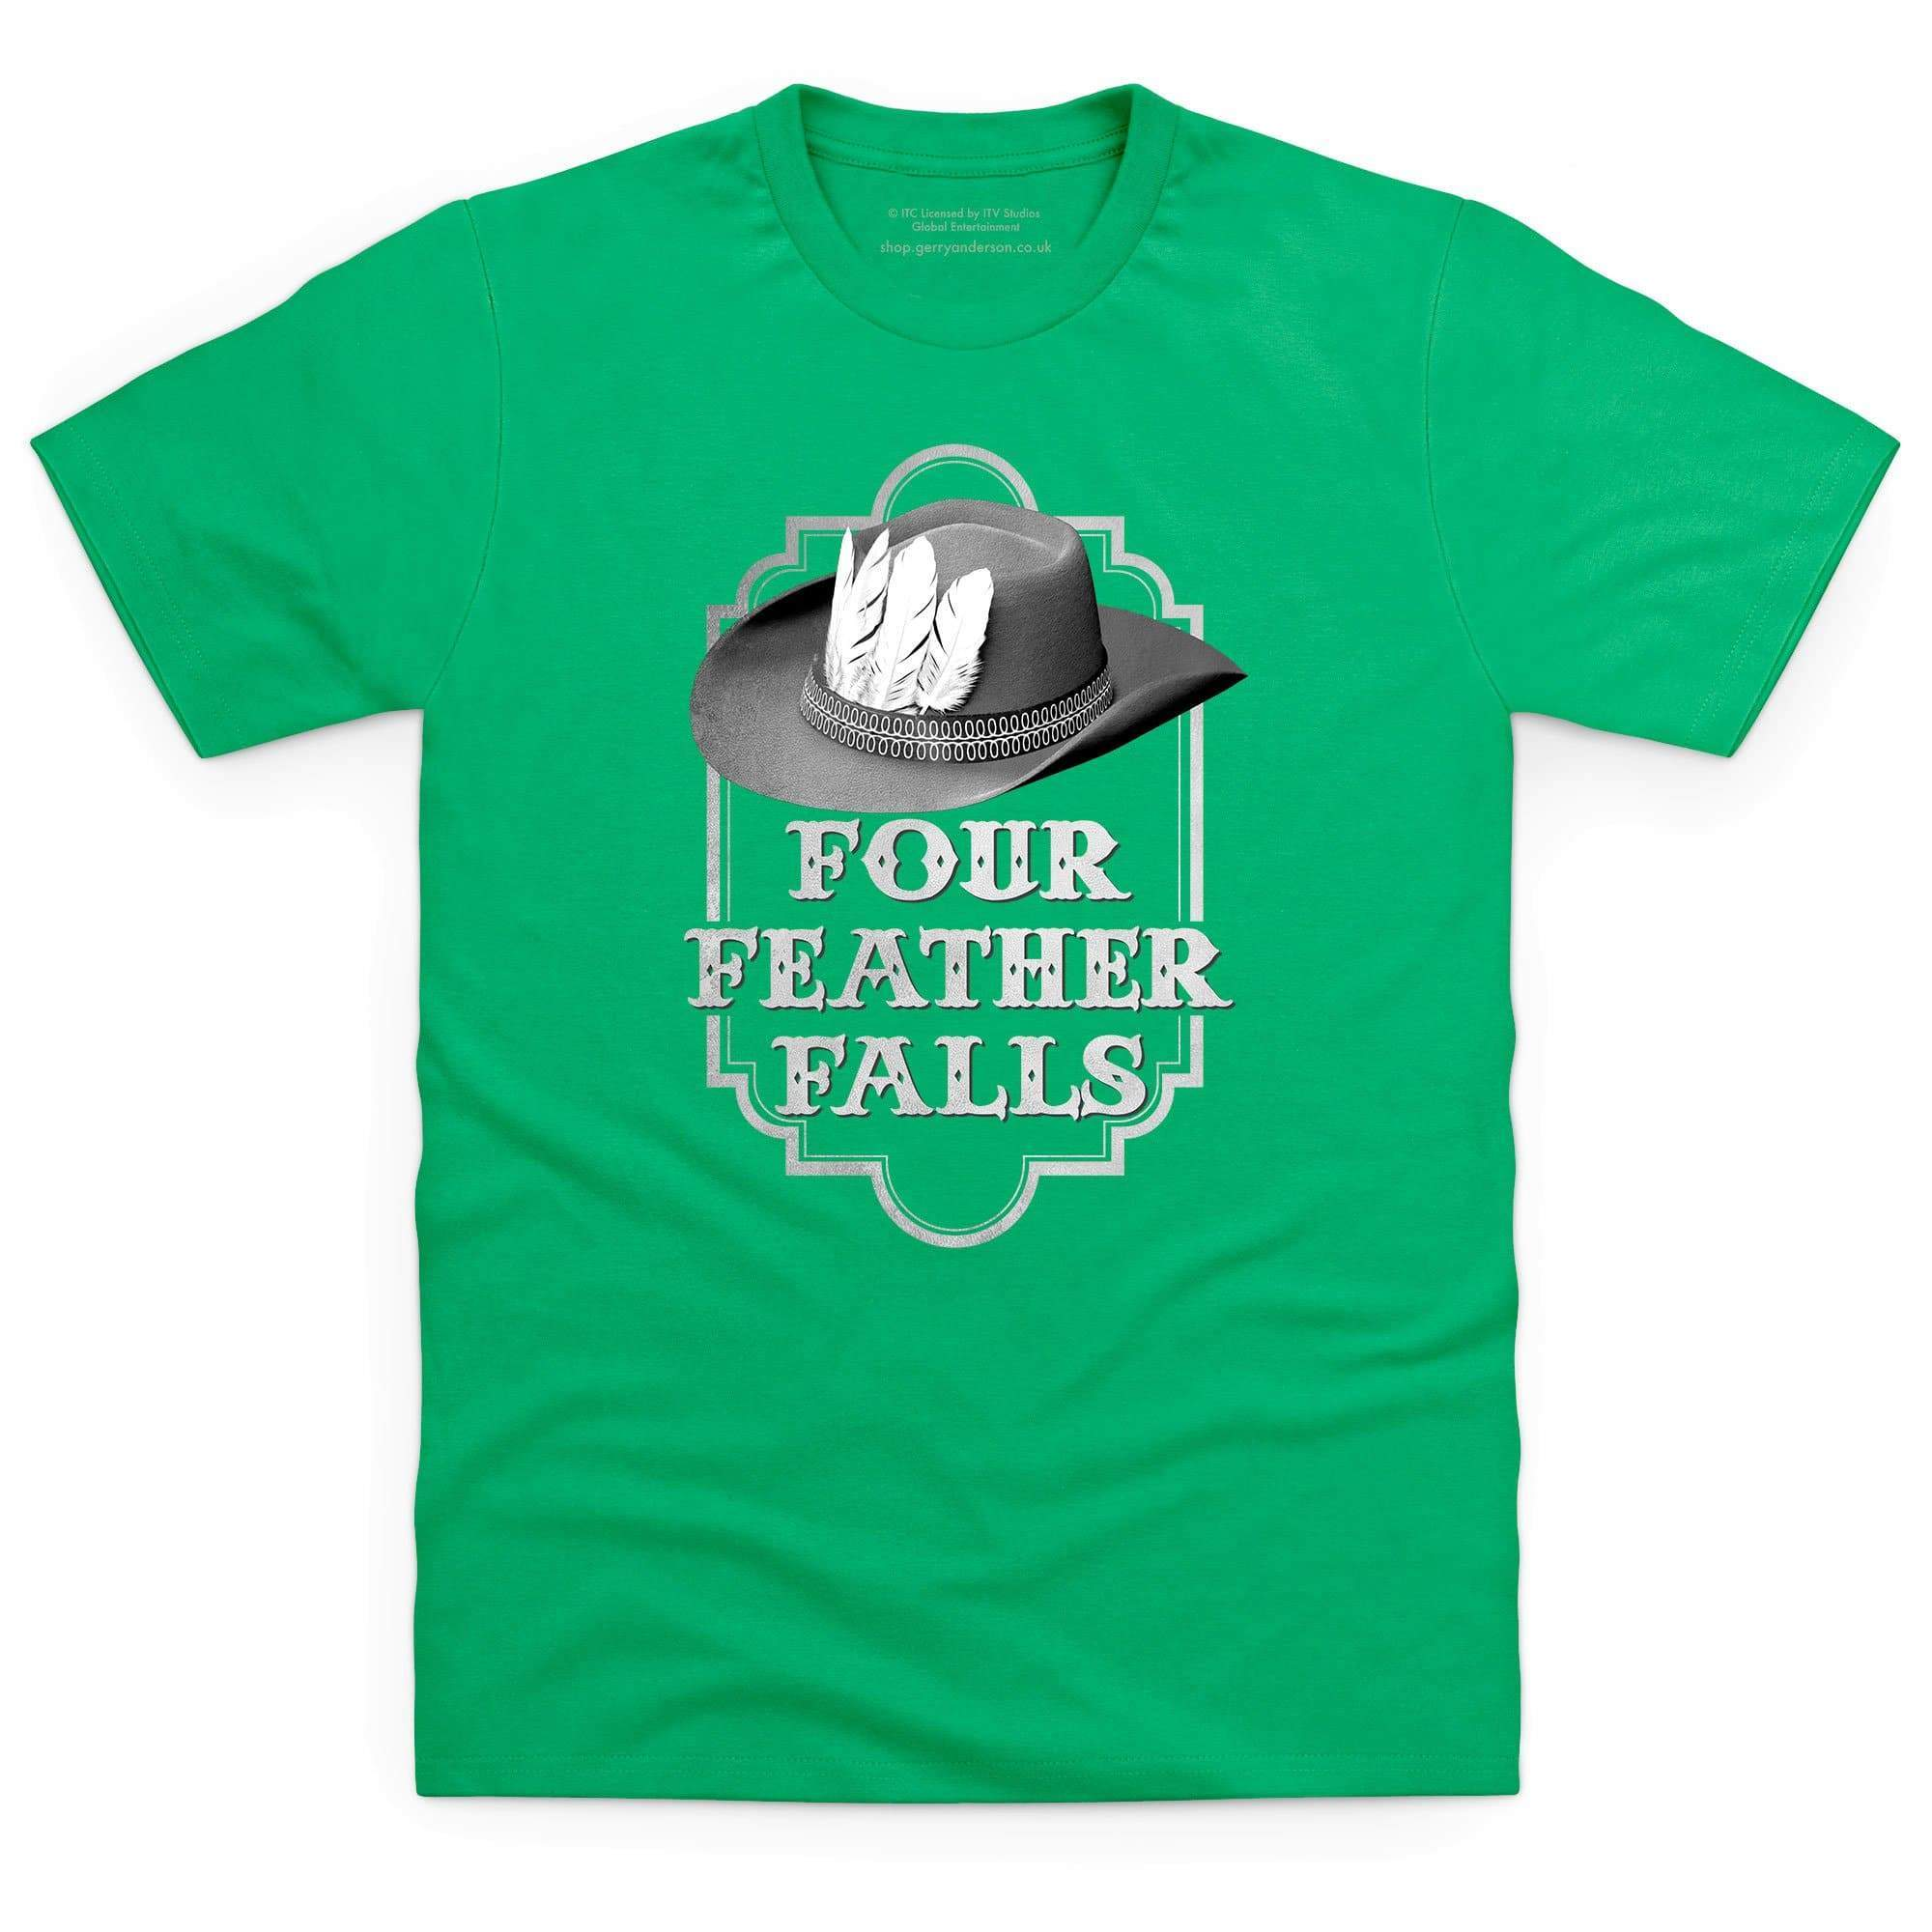 Four Feather Falls Men's T-shirt [Official & Exclusive] - The Gerry Anderson Store